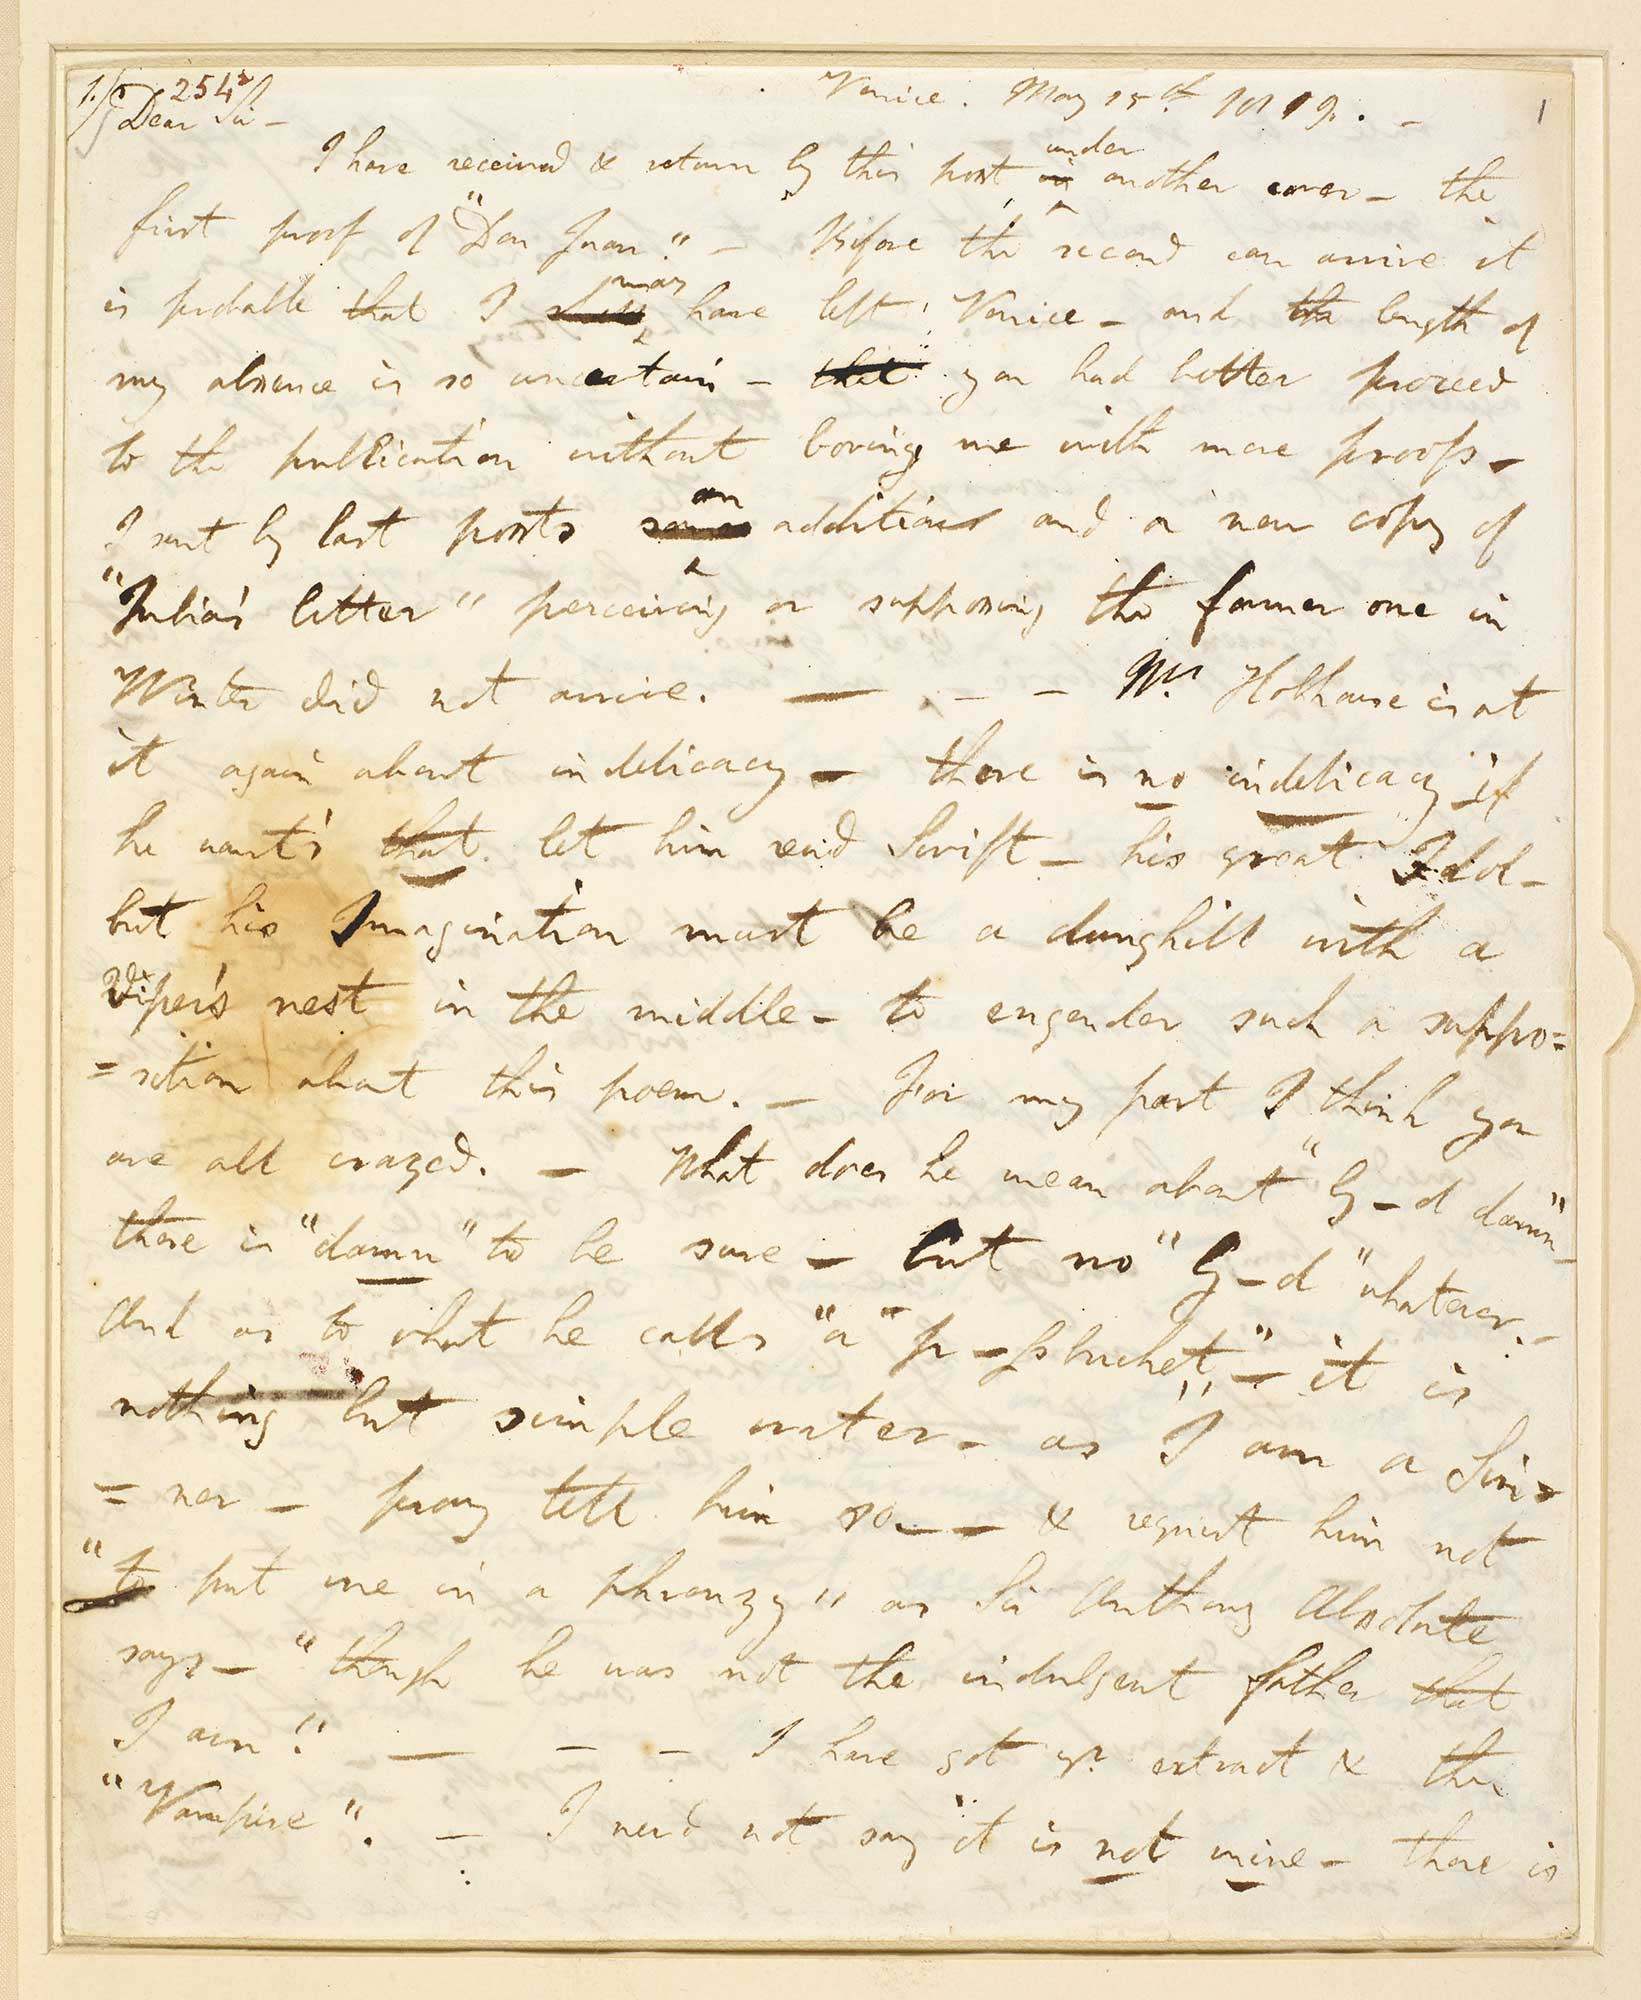 Letter from Lord Byron to John Murray about incidents at Villa Diodati, 1819